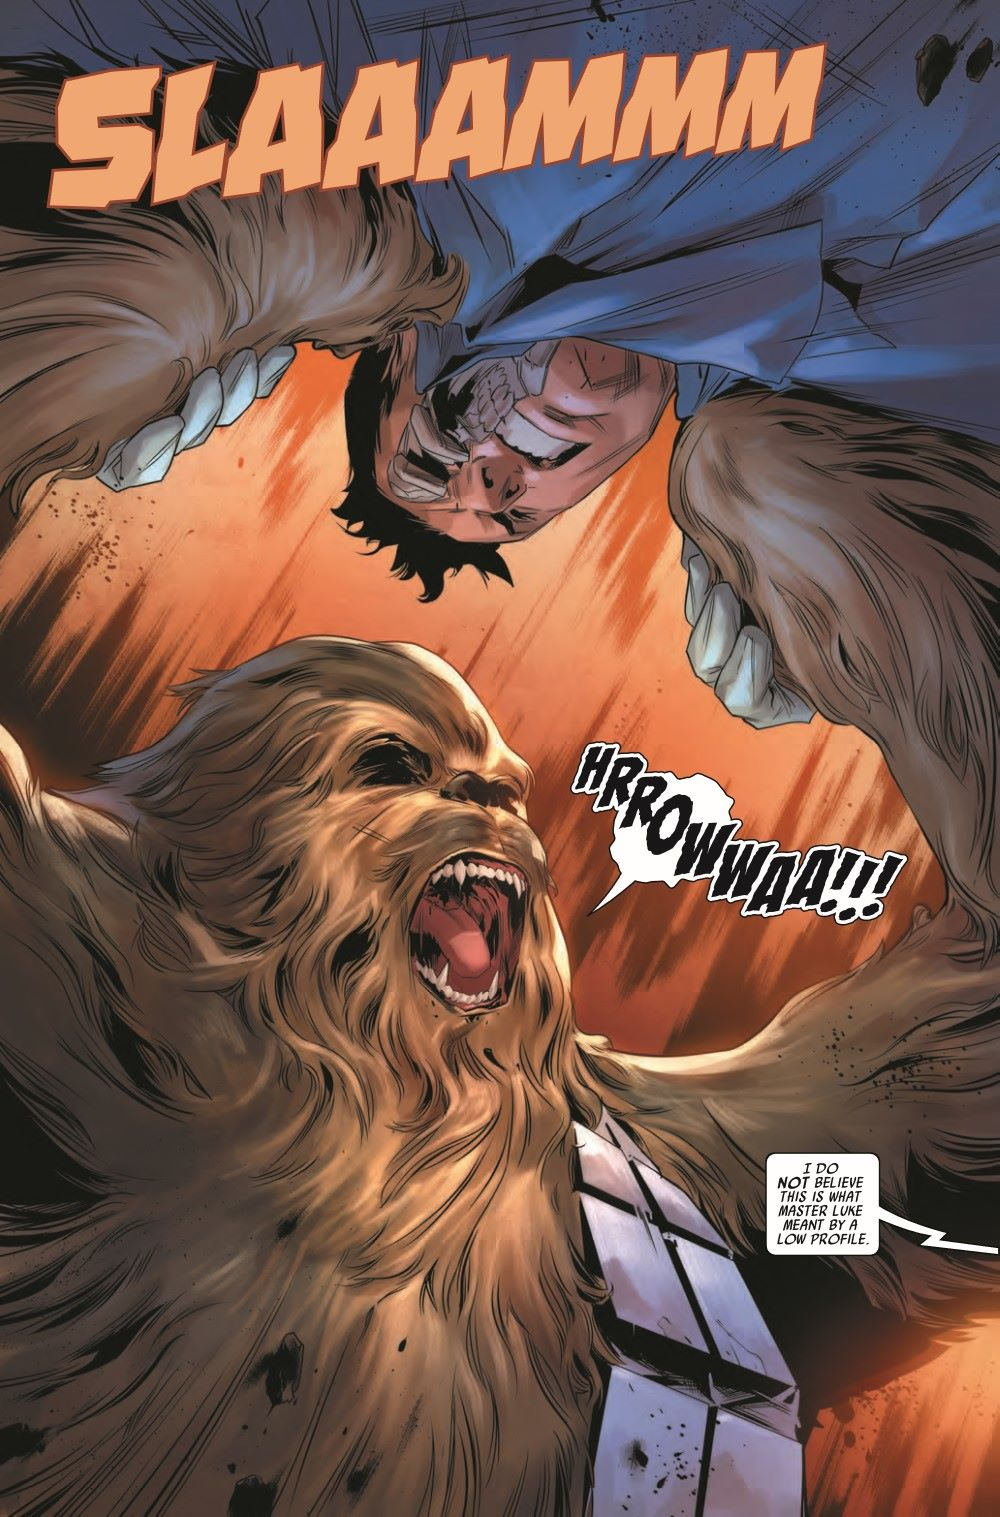 STWBOUNTYHUNT2020013_Preview-5 ComicList Previews: STAR WARS BOUNTY HUNTERS #13